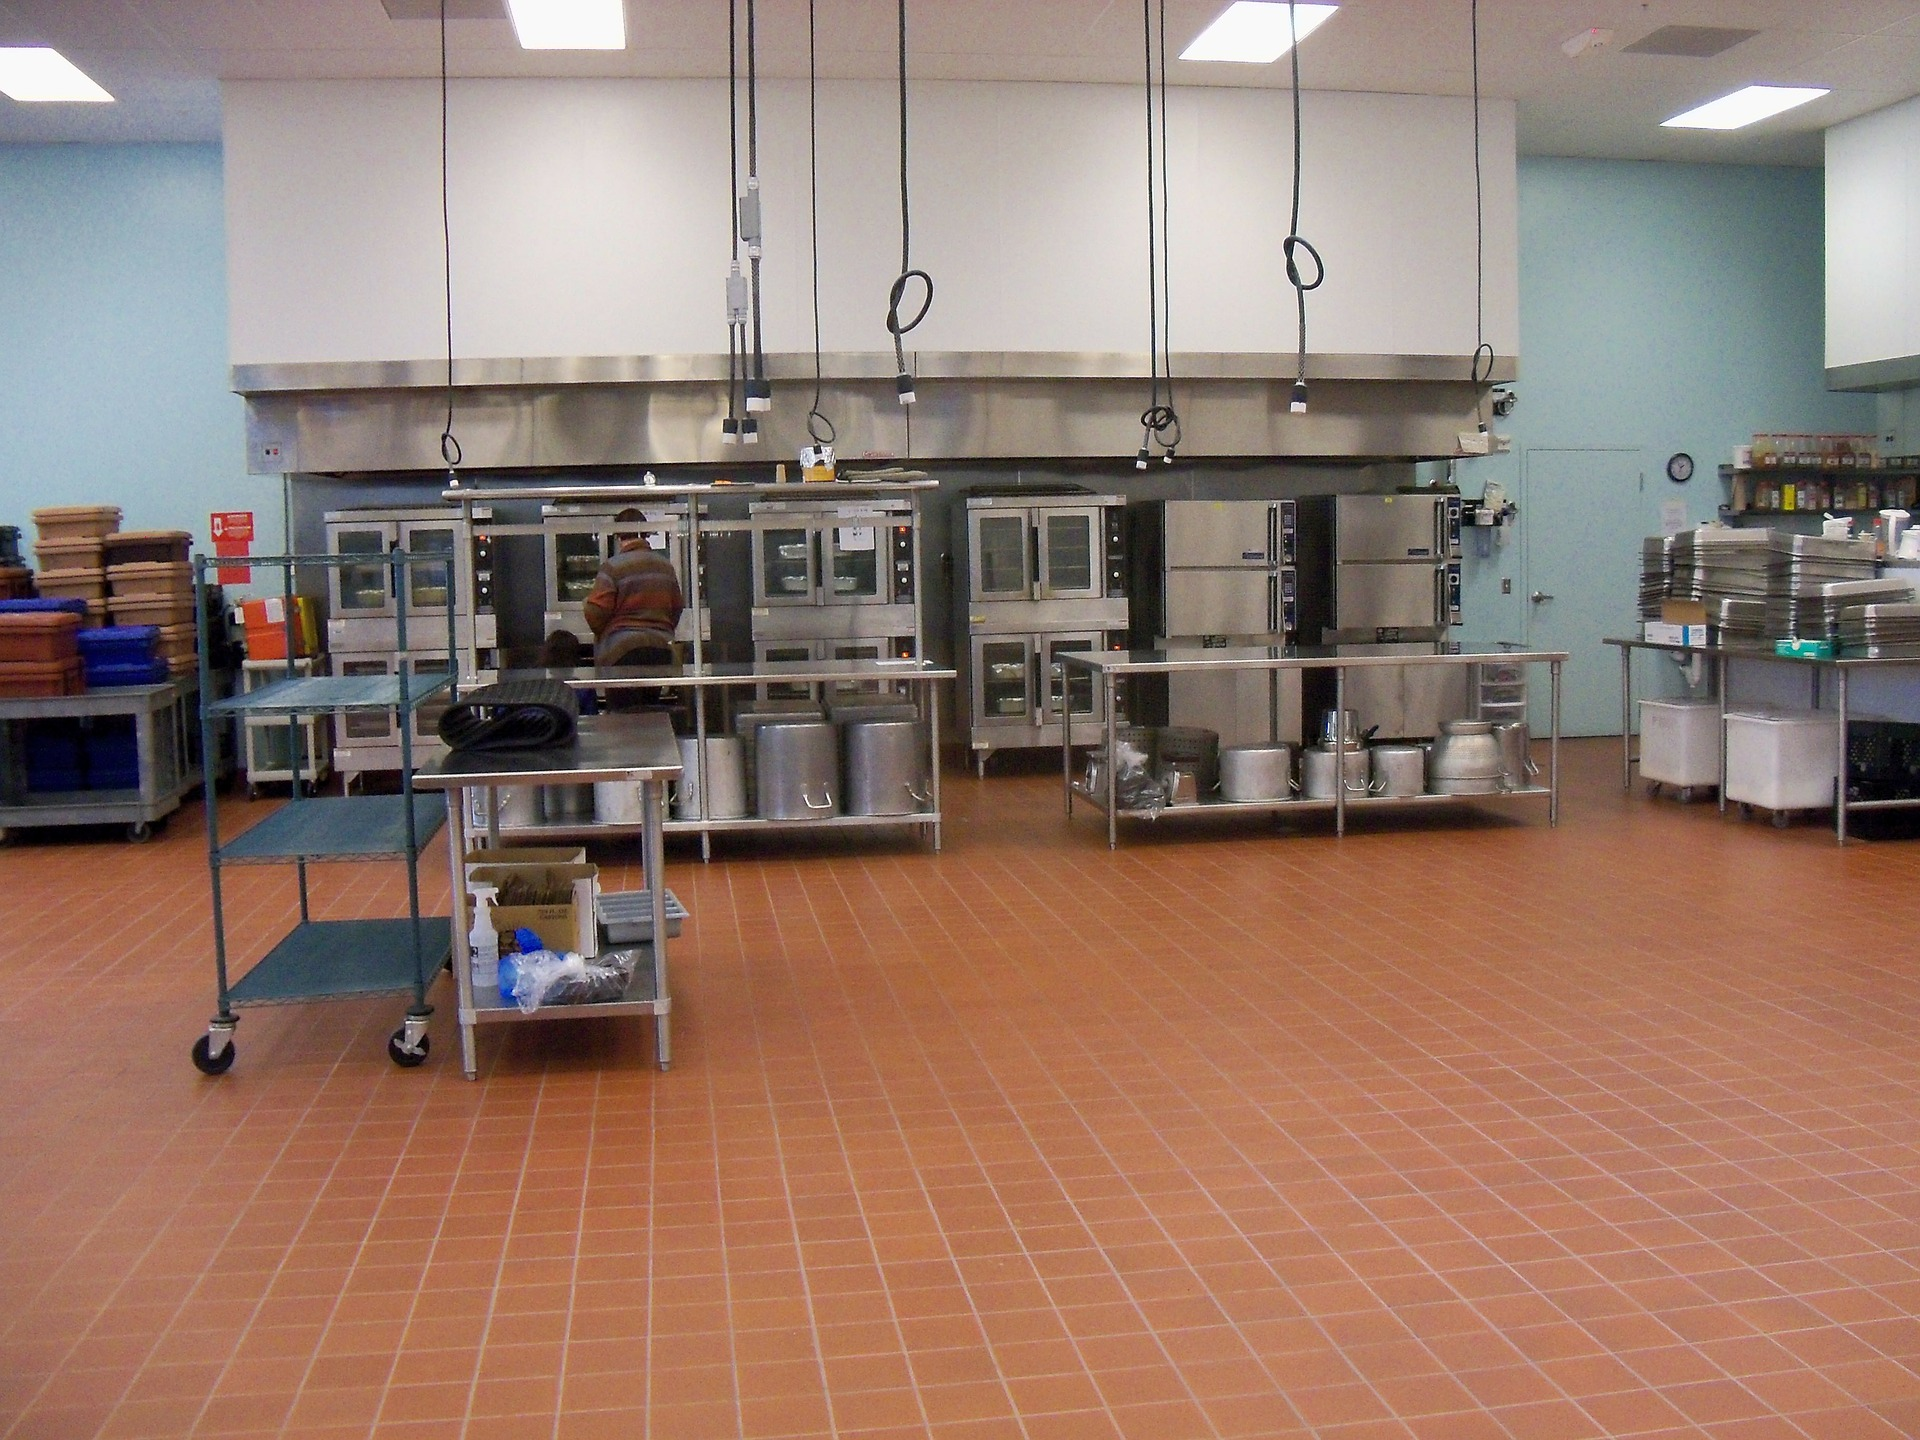 commercial kitchen needs Houston commercial plumber to service grease trap